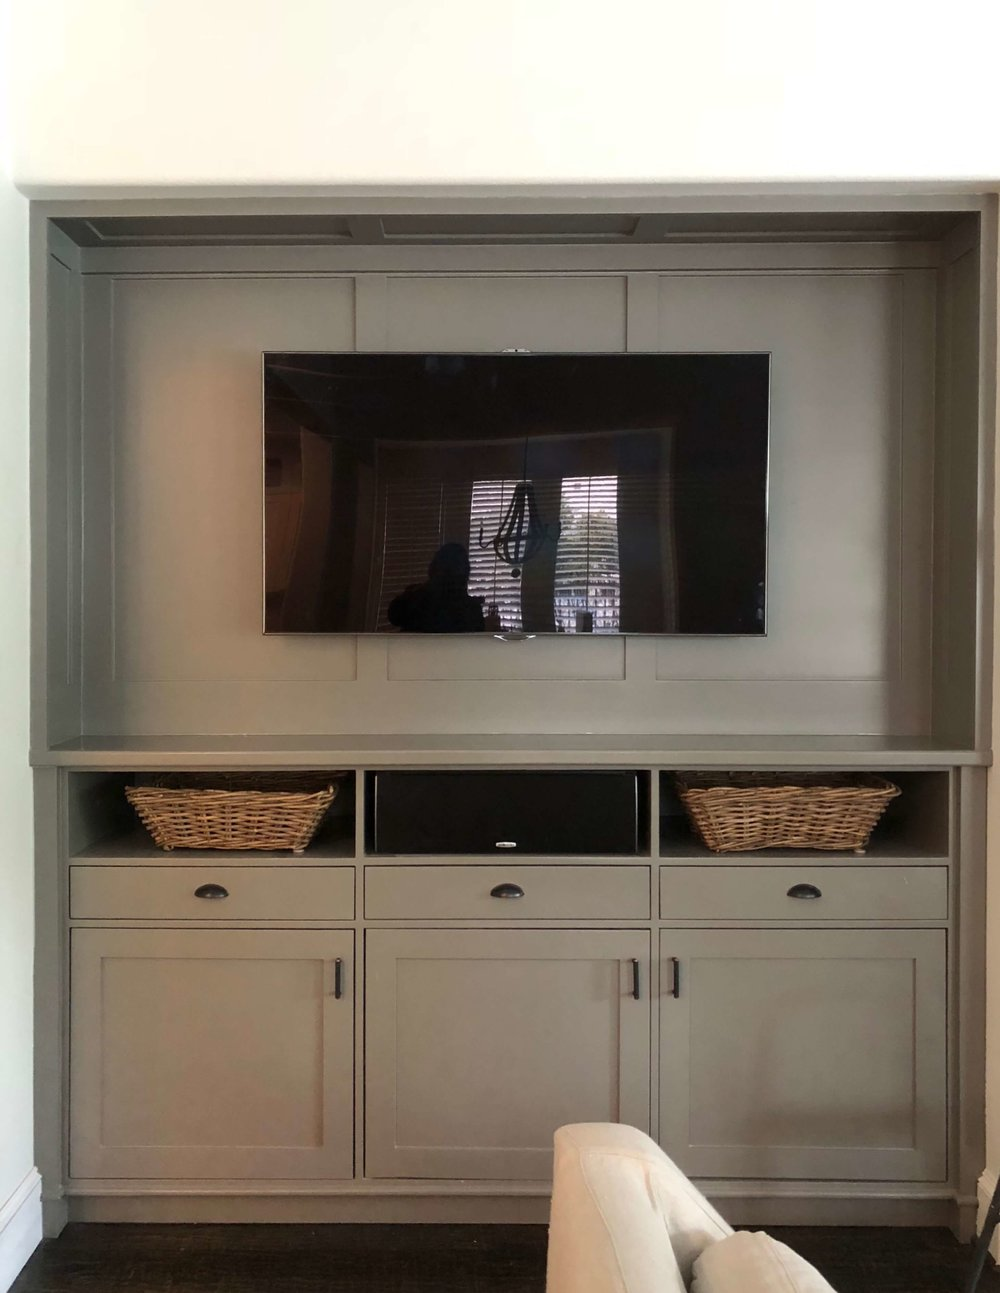 AFTER - TV entertainment center built-in cabinet with full height cabinet | Designer: Carla Aston #tvcabinet #entertainmentcenter #builtin #cabinetry